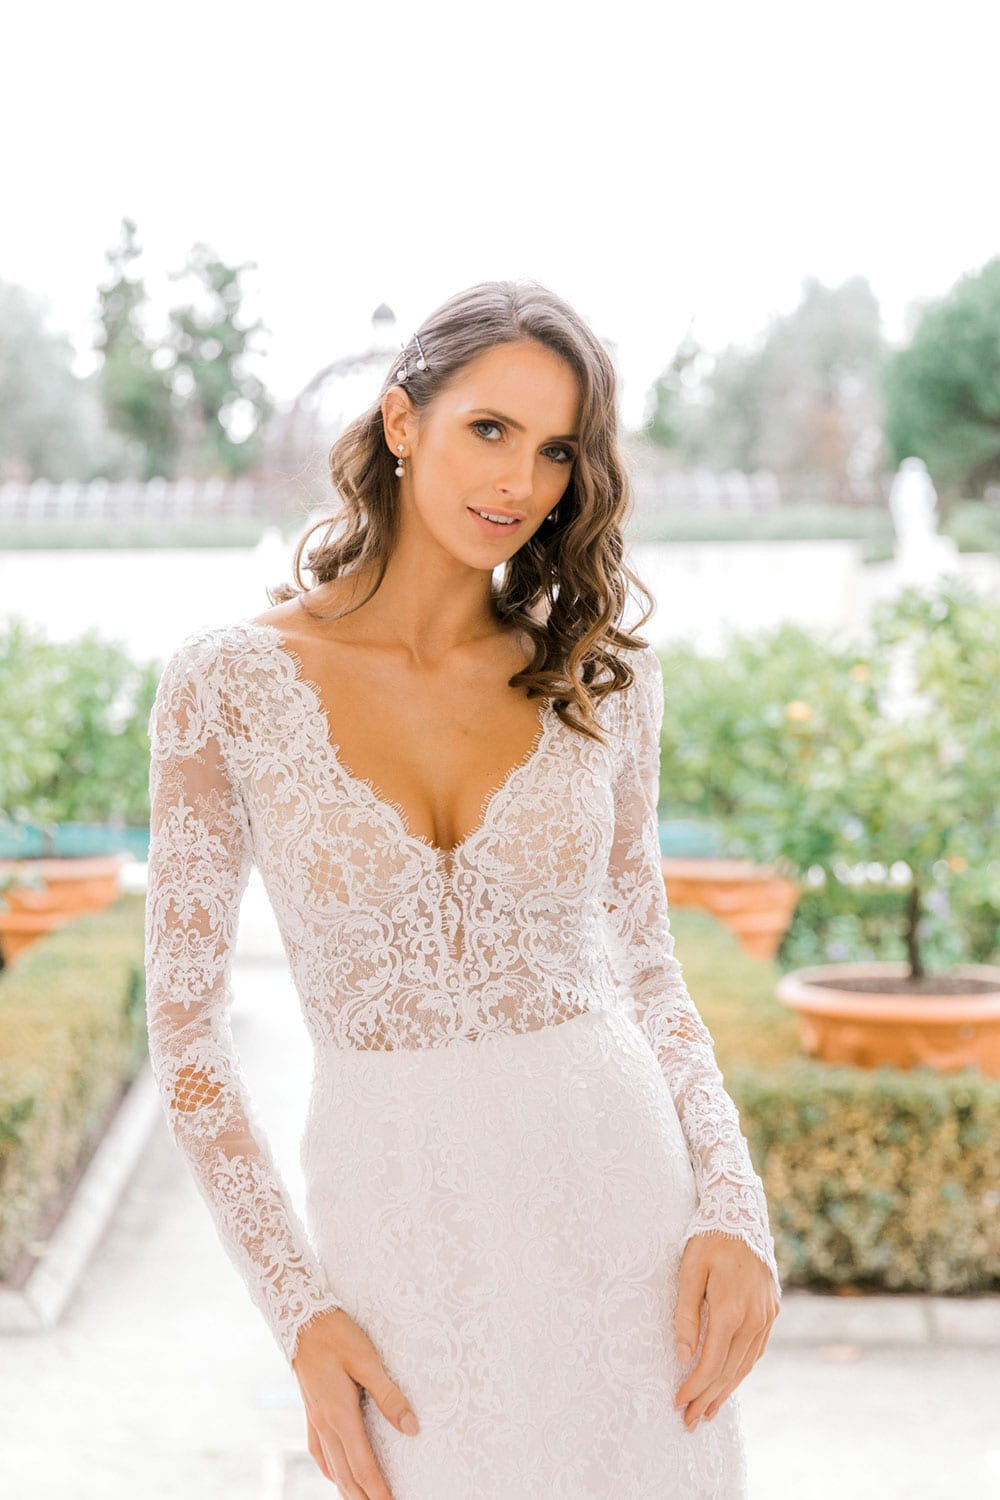 Model wearing Vinka Design Nadene Wedding Dress, a Long Sleeve Lace Wedding Gown outside old building with beautiful garden in background